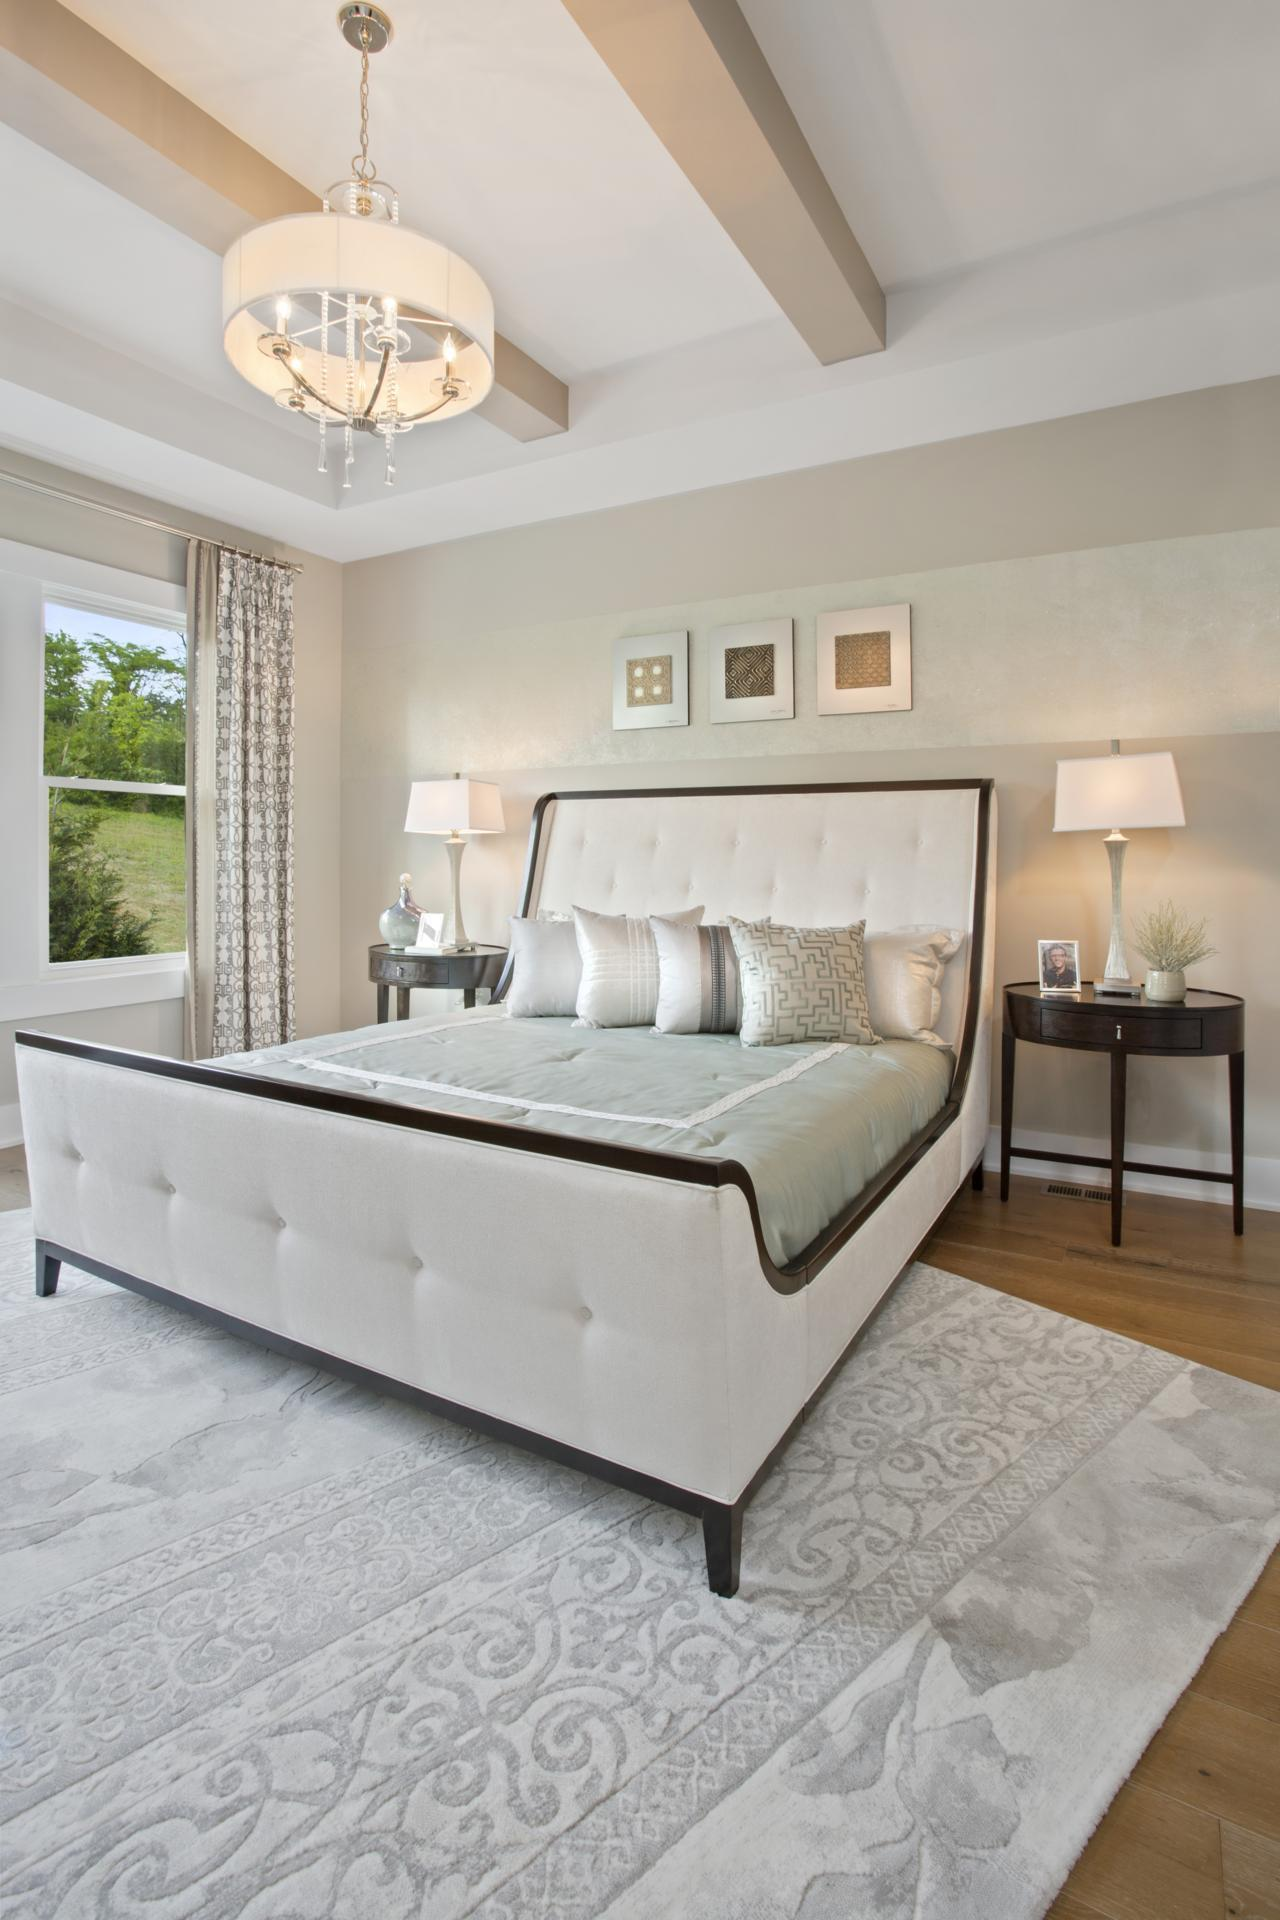 Bedroom featured in the Sebastian By Drees Homes in Cleveland, OH